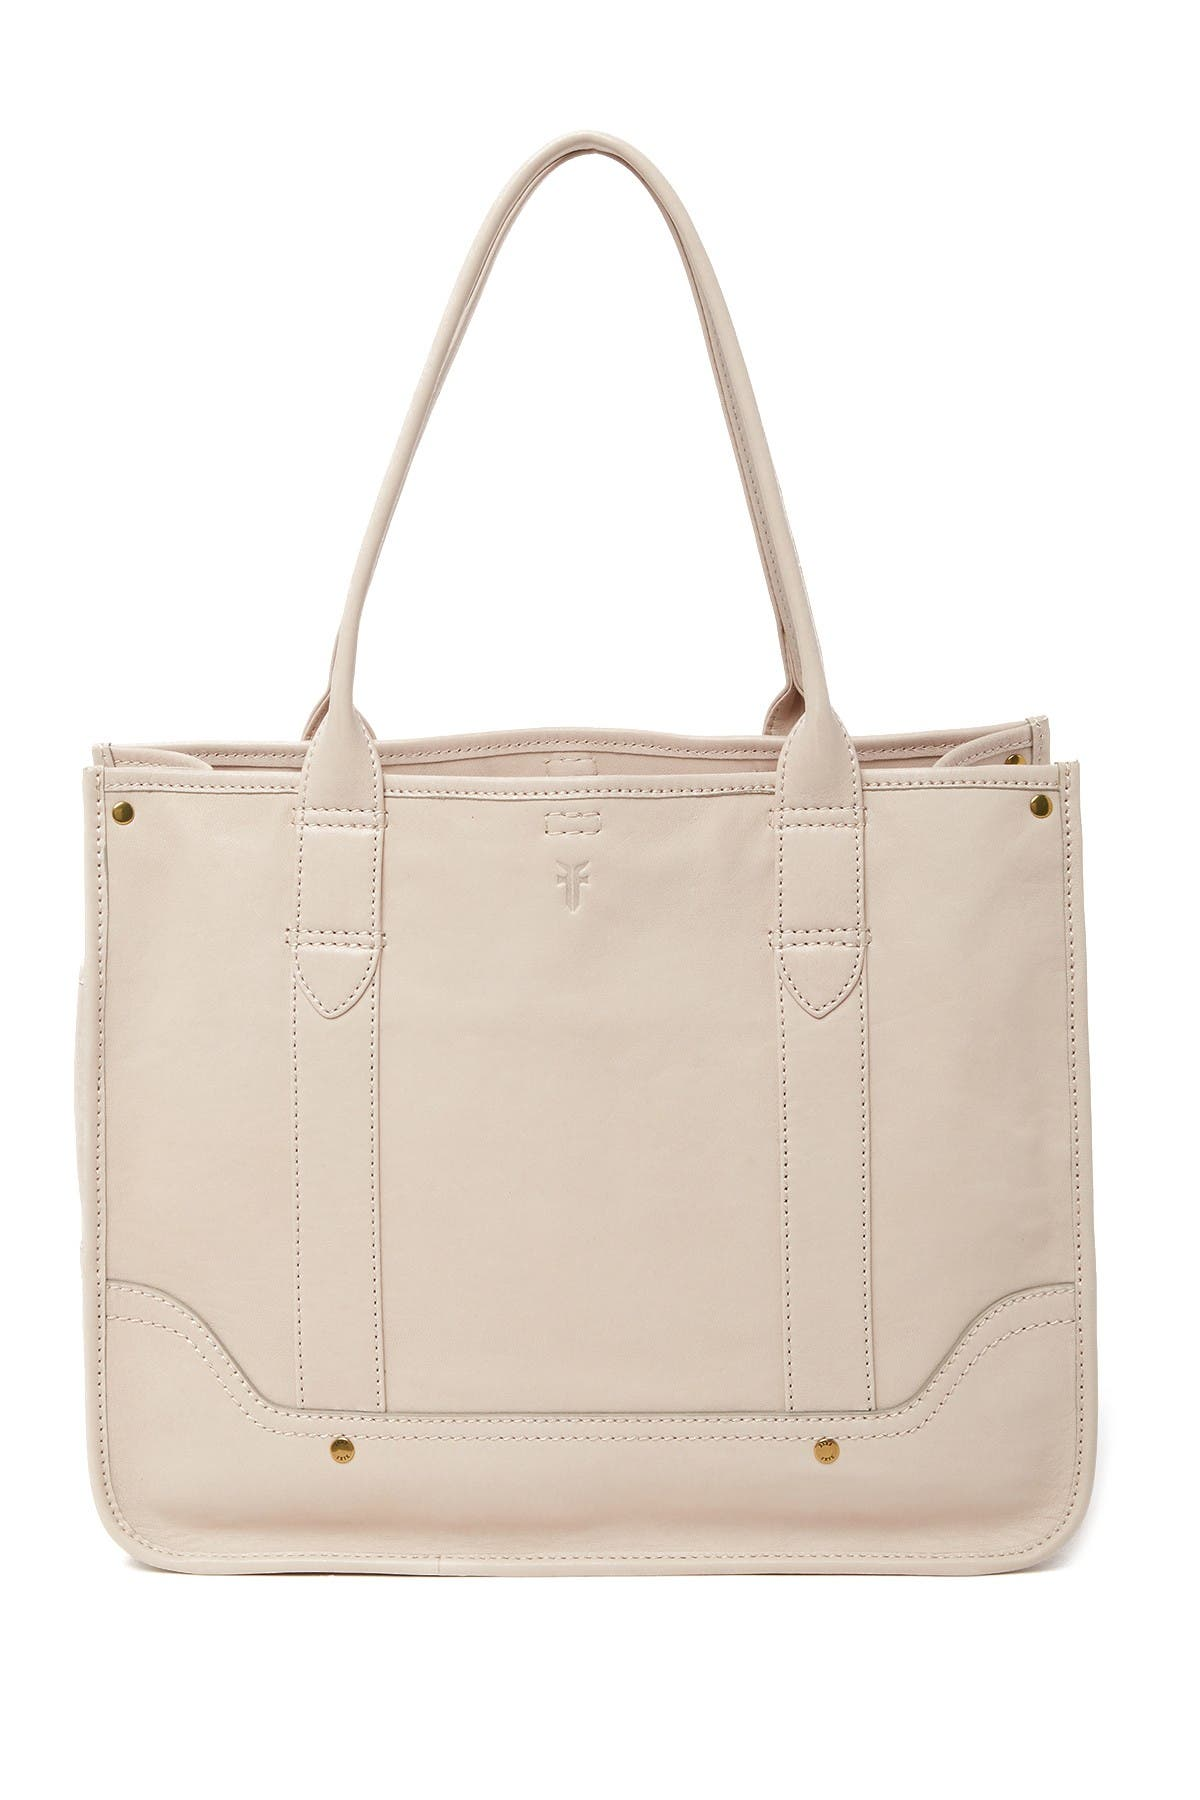 Image of Frye Madison Shopper Leather Tote Bag